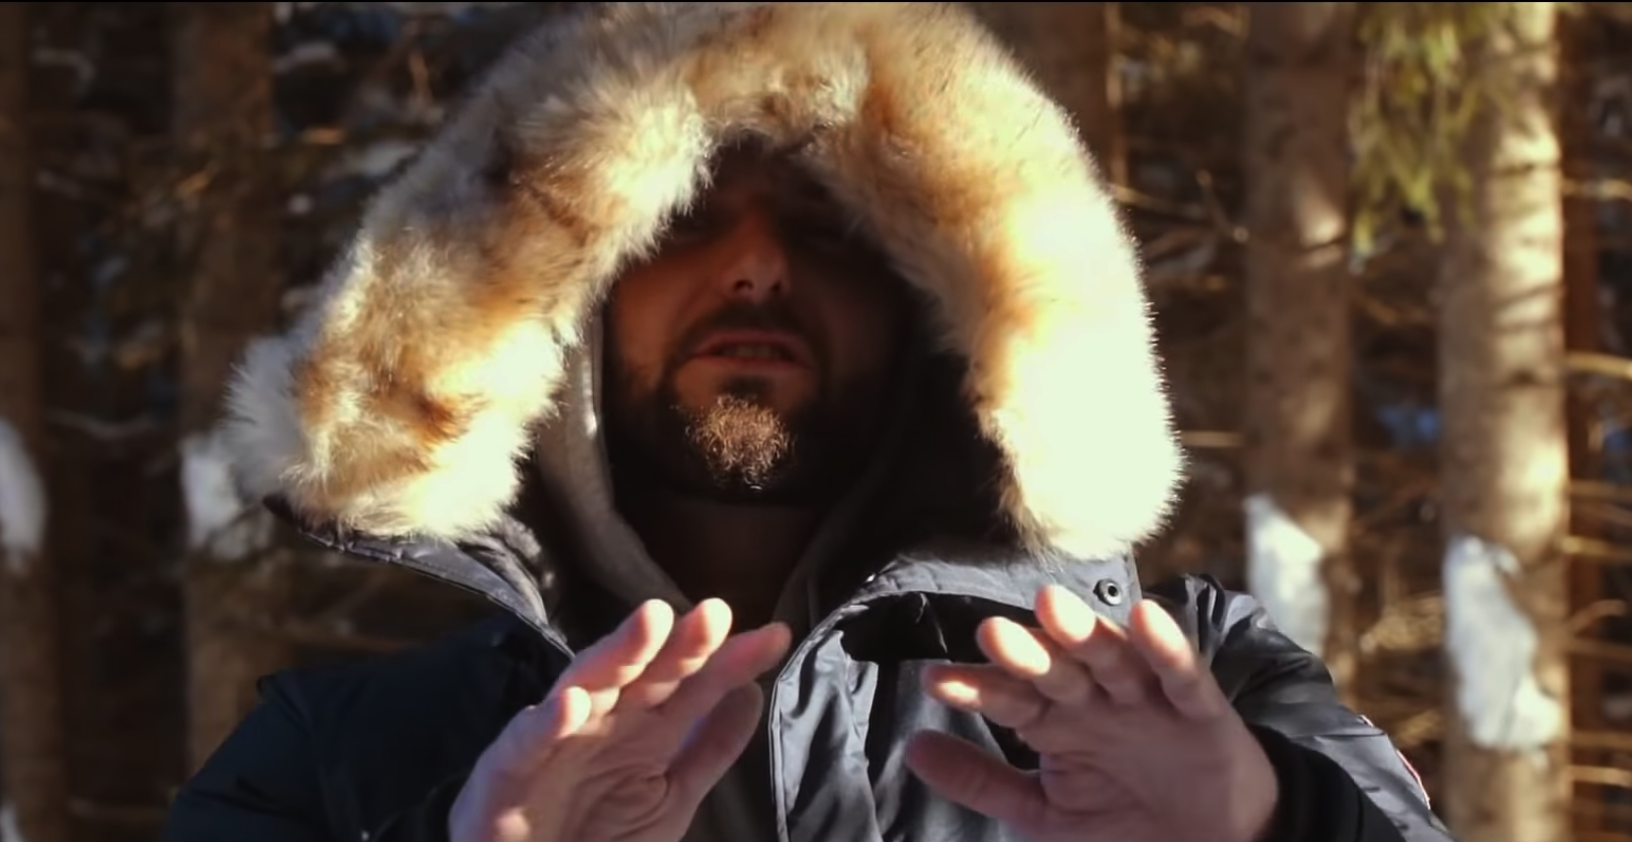 Bizzy Montana - Regenschirm (Video) | 16BARS.DE